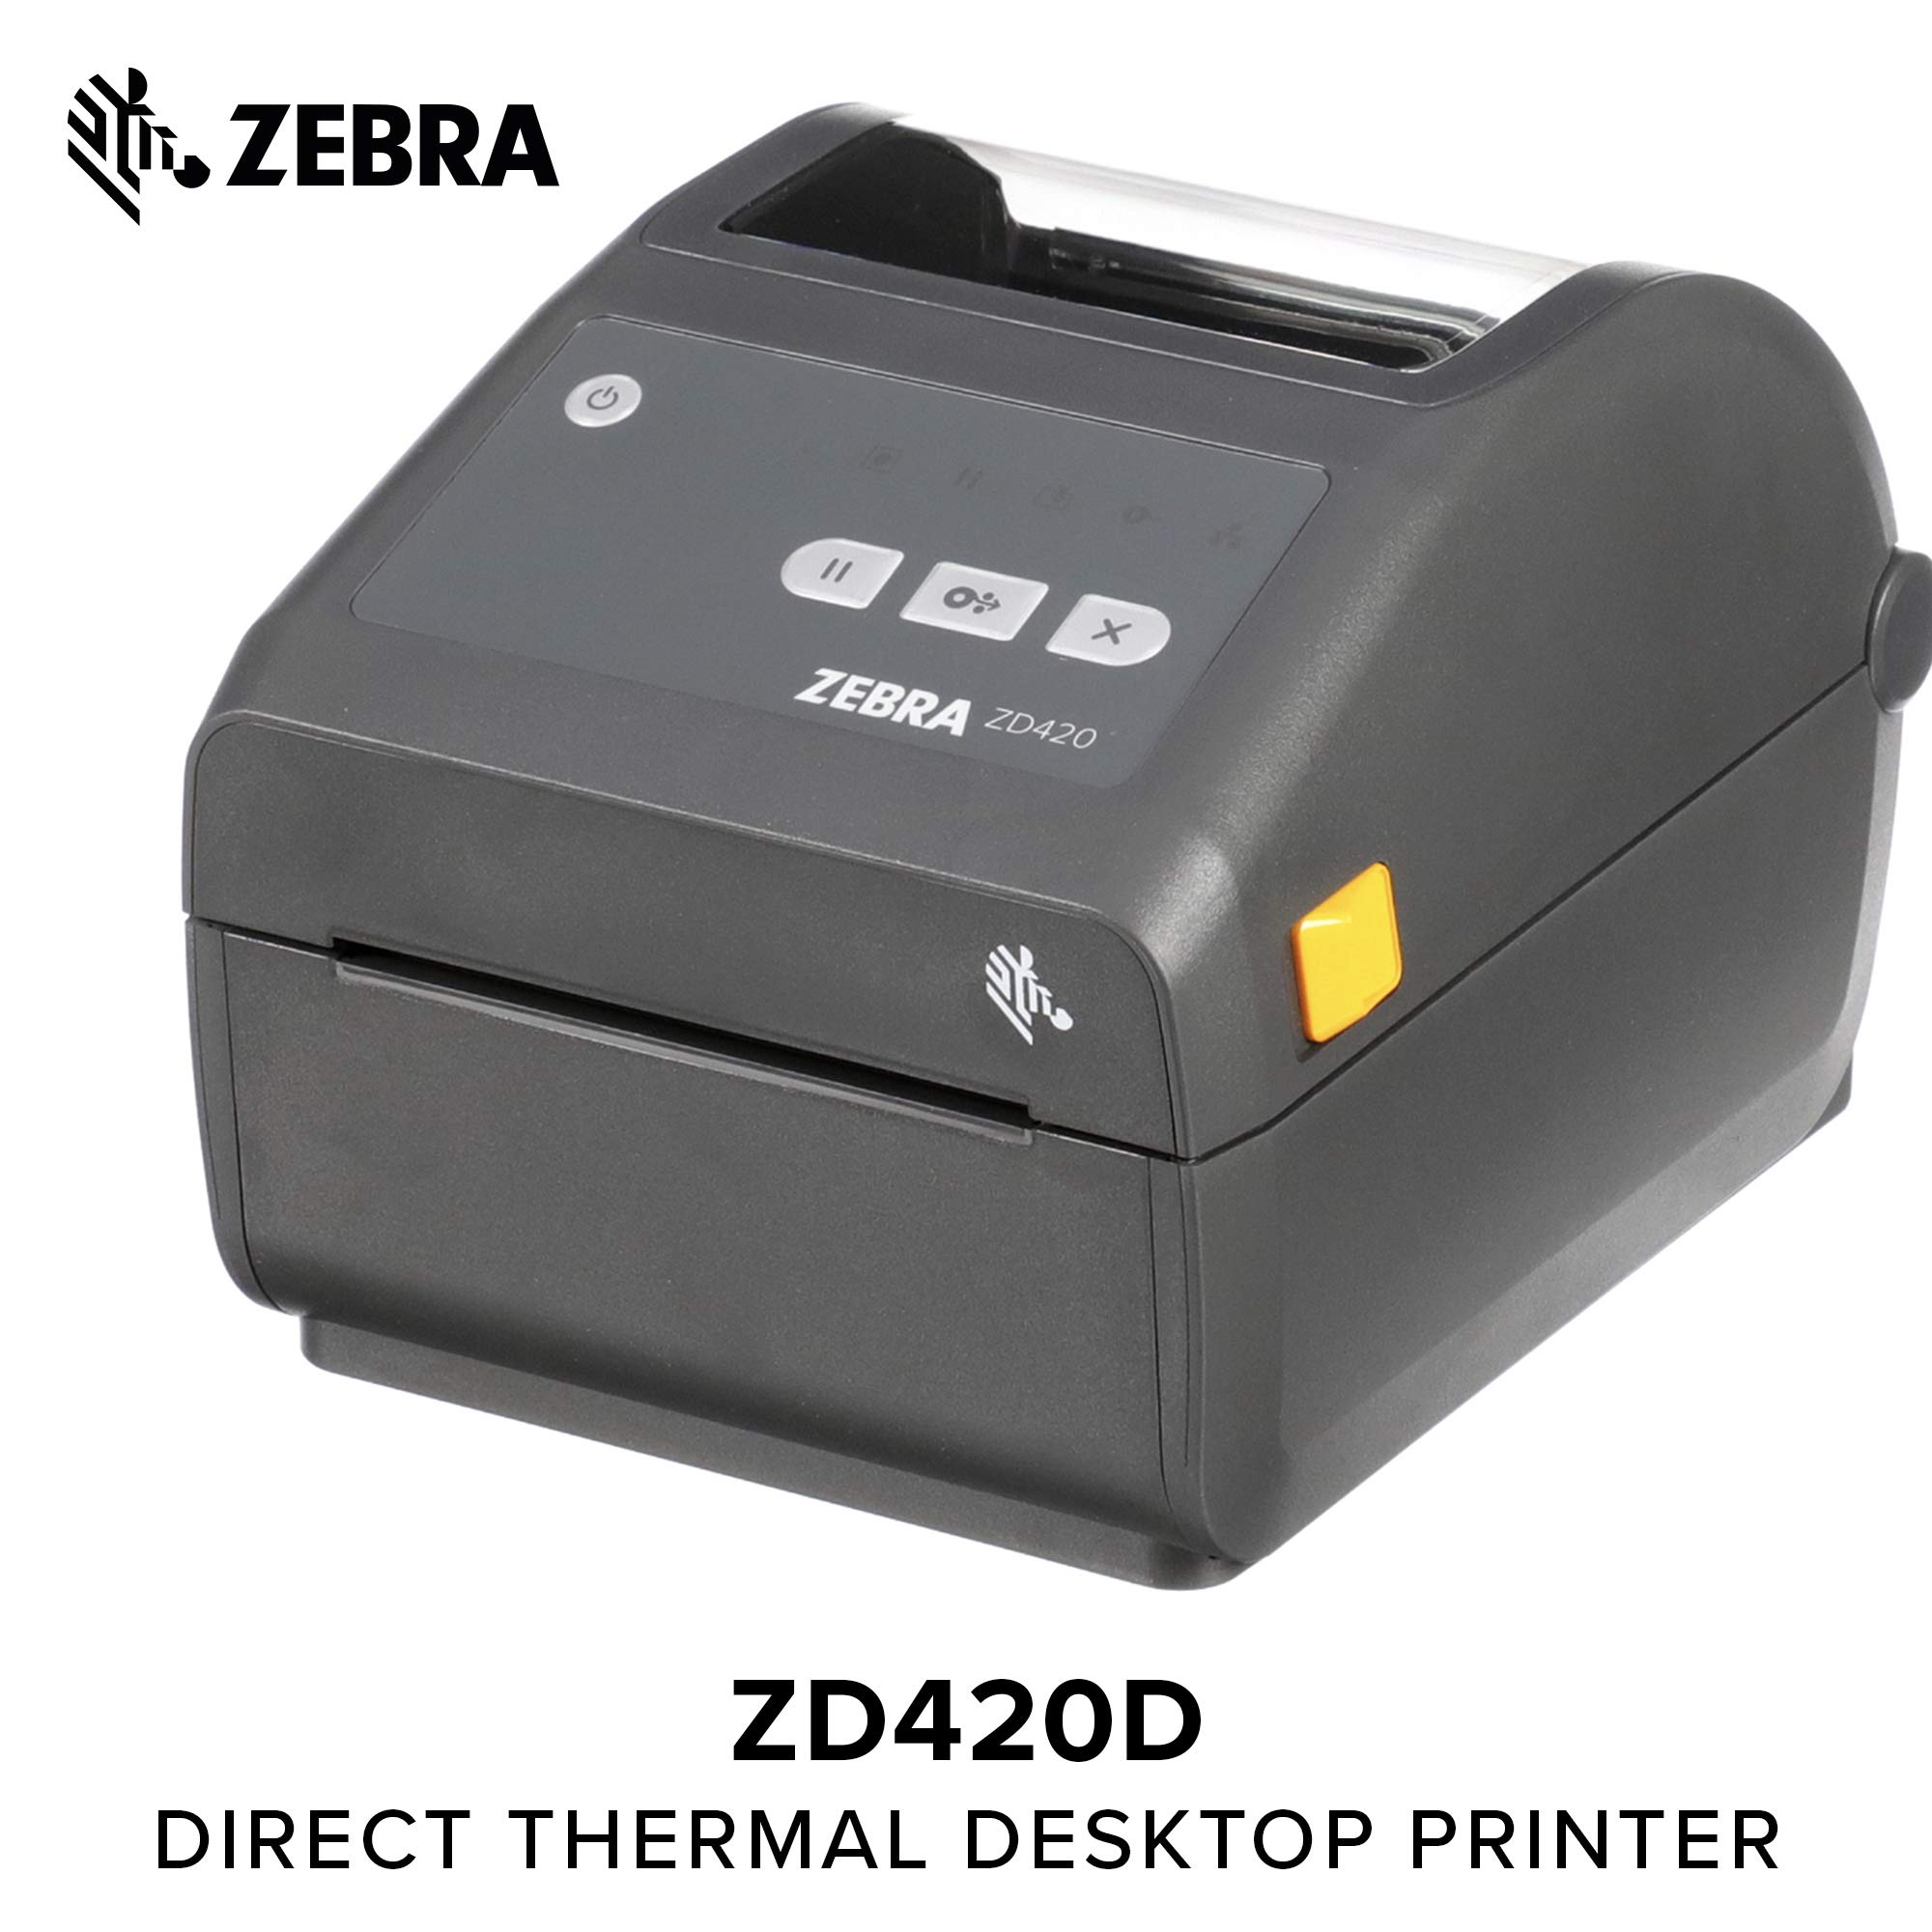 Zebra - ZD420d Direct Thermal Desktop Printer for Labels and Barcodes - Print Width 4 in - 203 dpi - Interface: WiFi, Bluetooth, USB - ZD42042-D01W01EZ